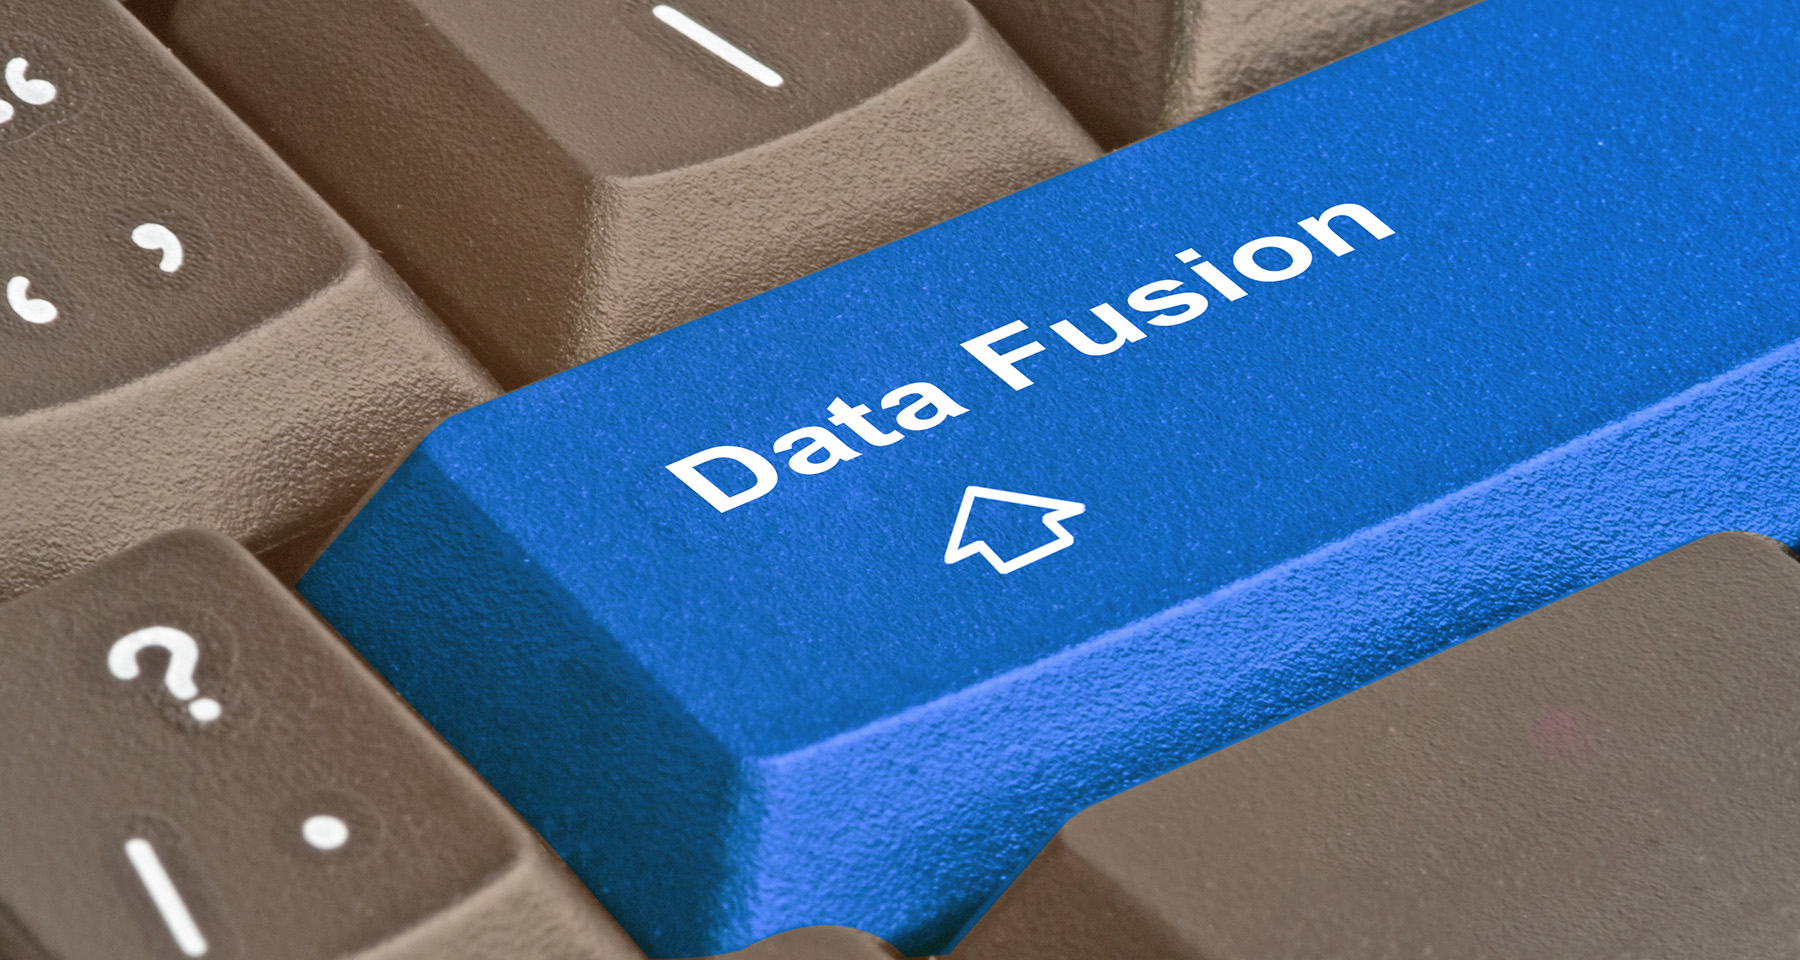 Enhancing existing data value with data fusion